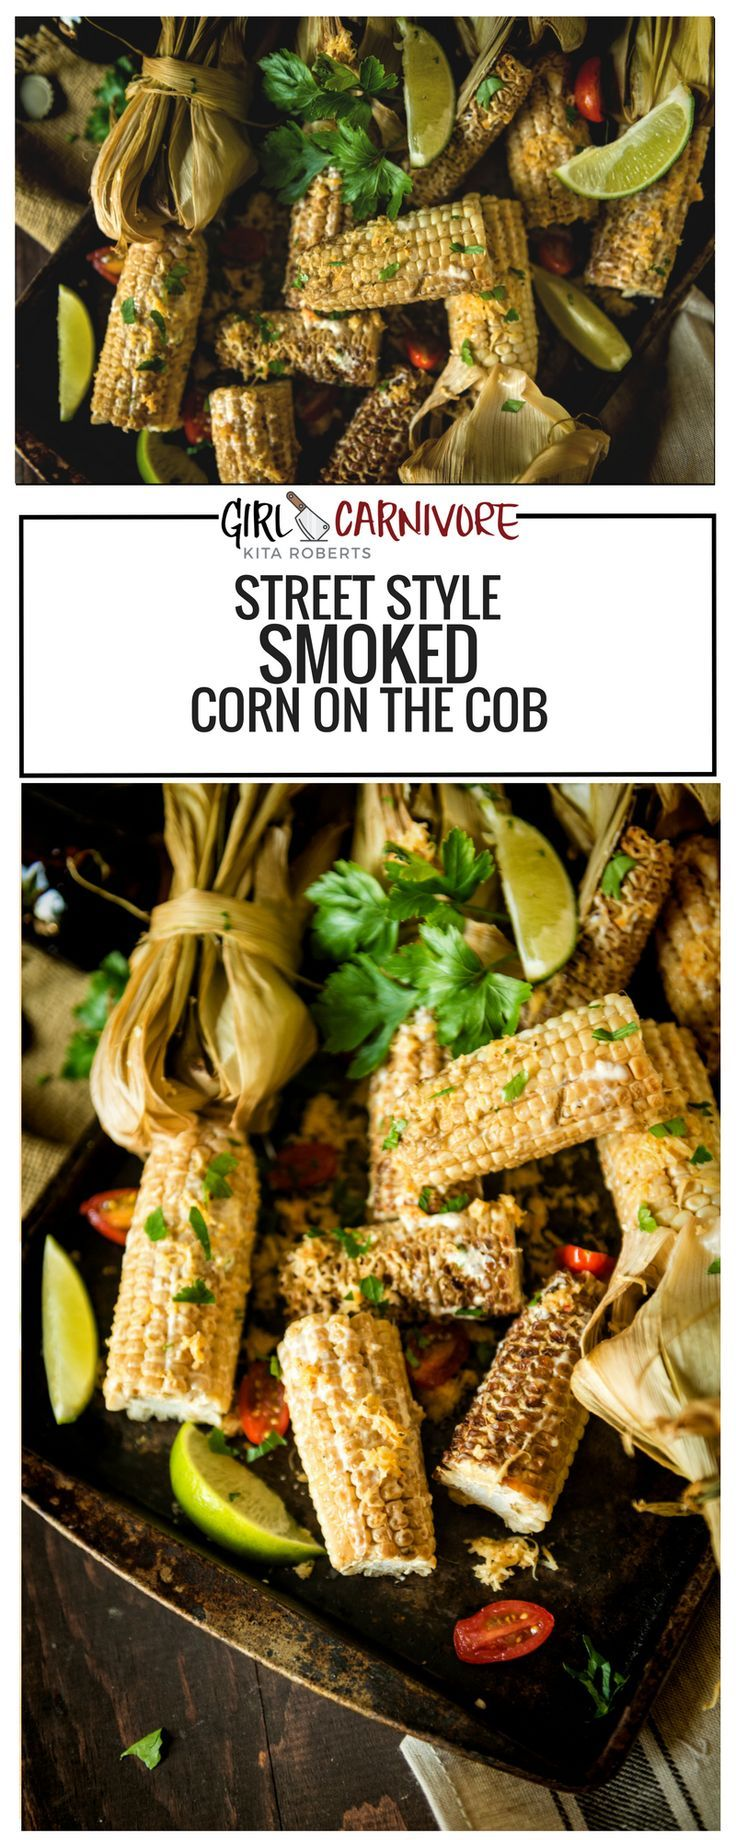 Smoked corn on the cob best food blogger recipes pinterest smoked corn on the cob best food blogger recipes pinterest smoking dinners and grilling forumfinder Gallery